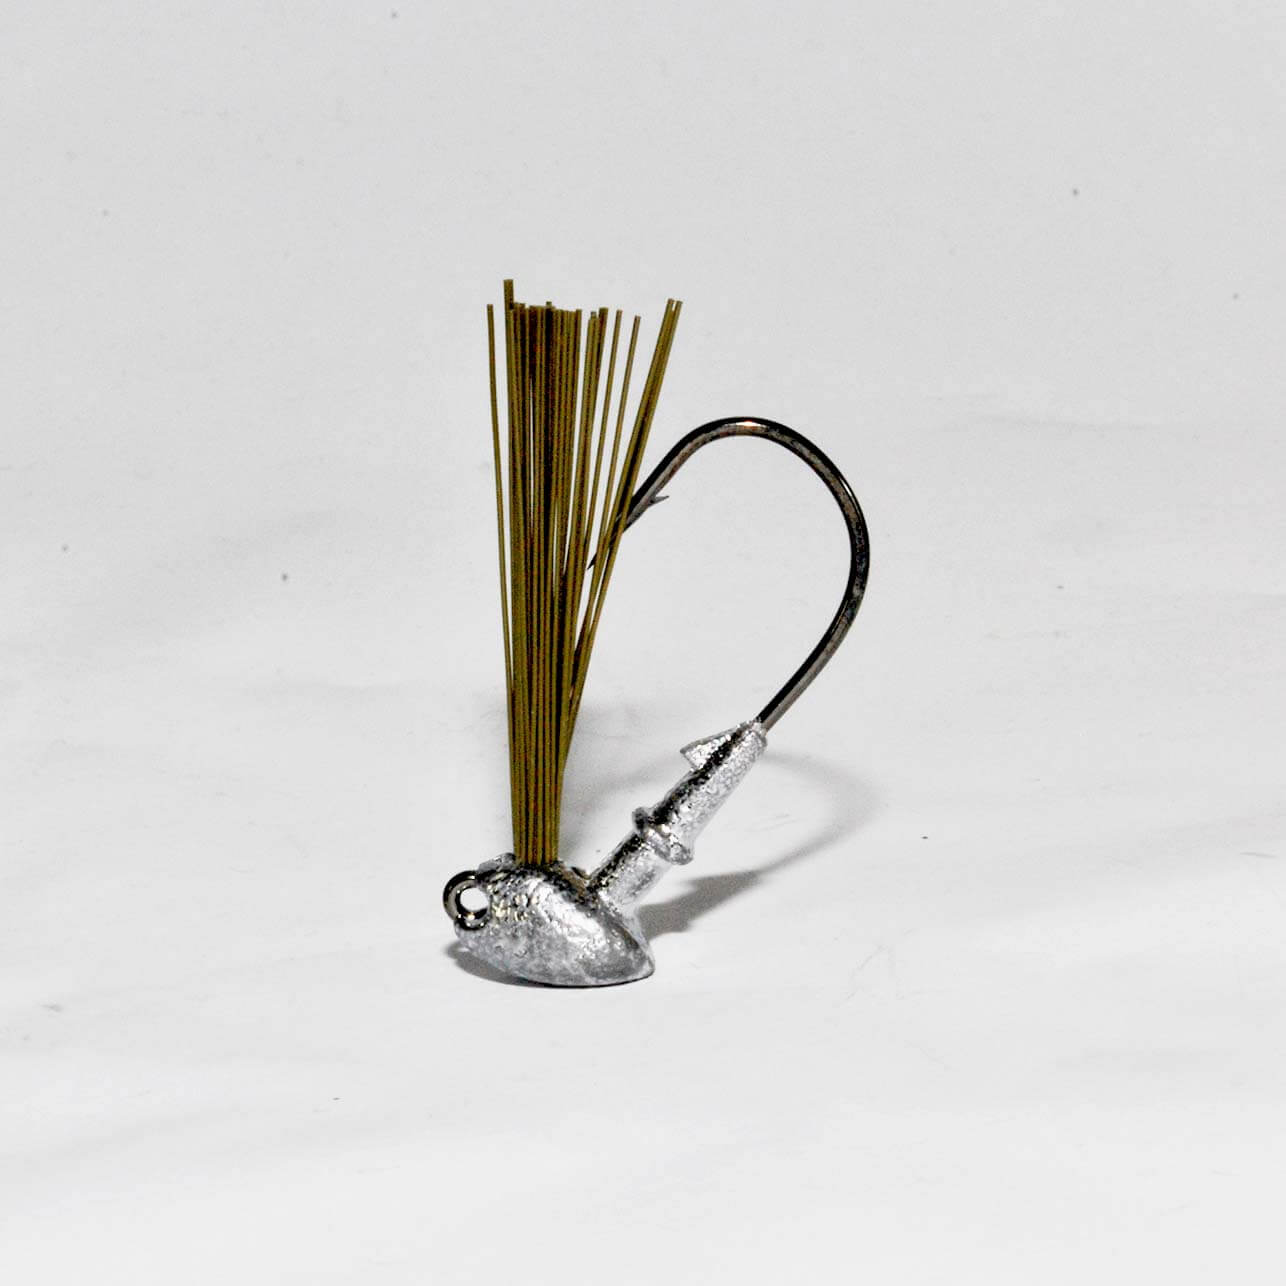 Brush jig head 4/0-10g